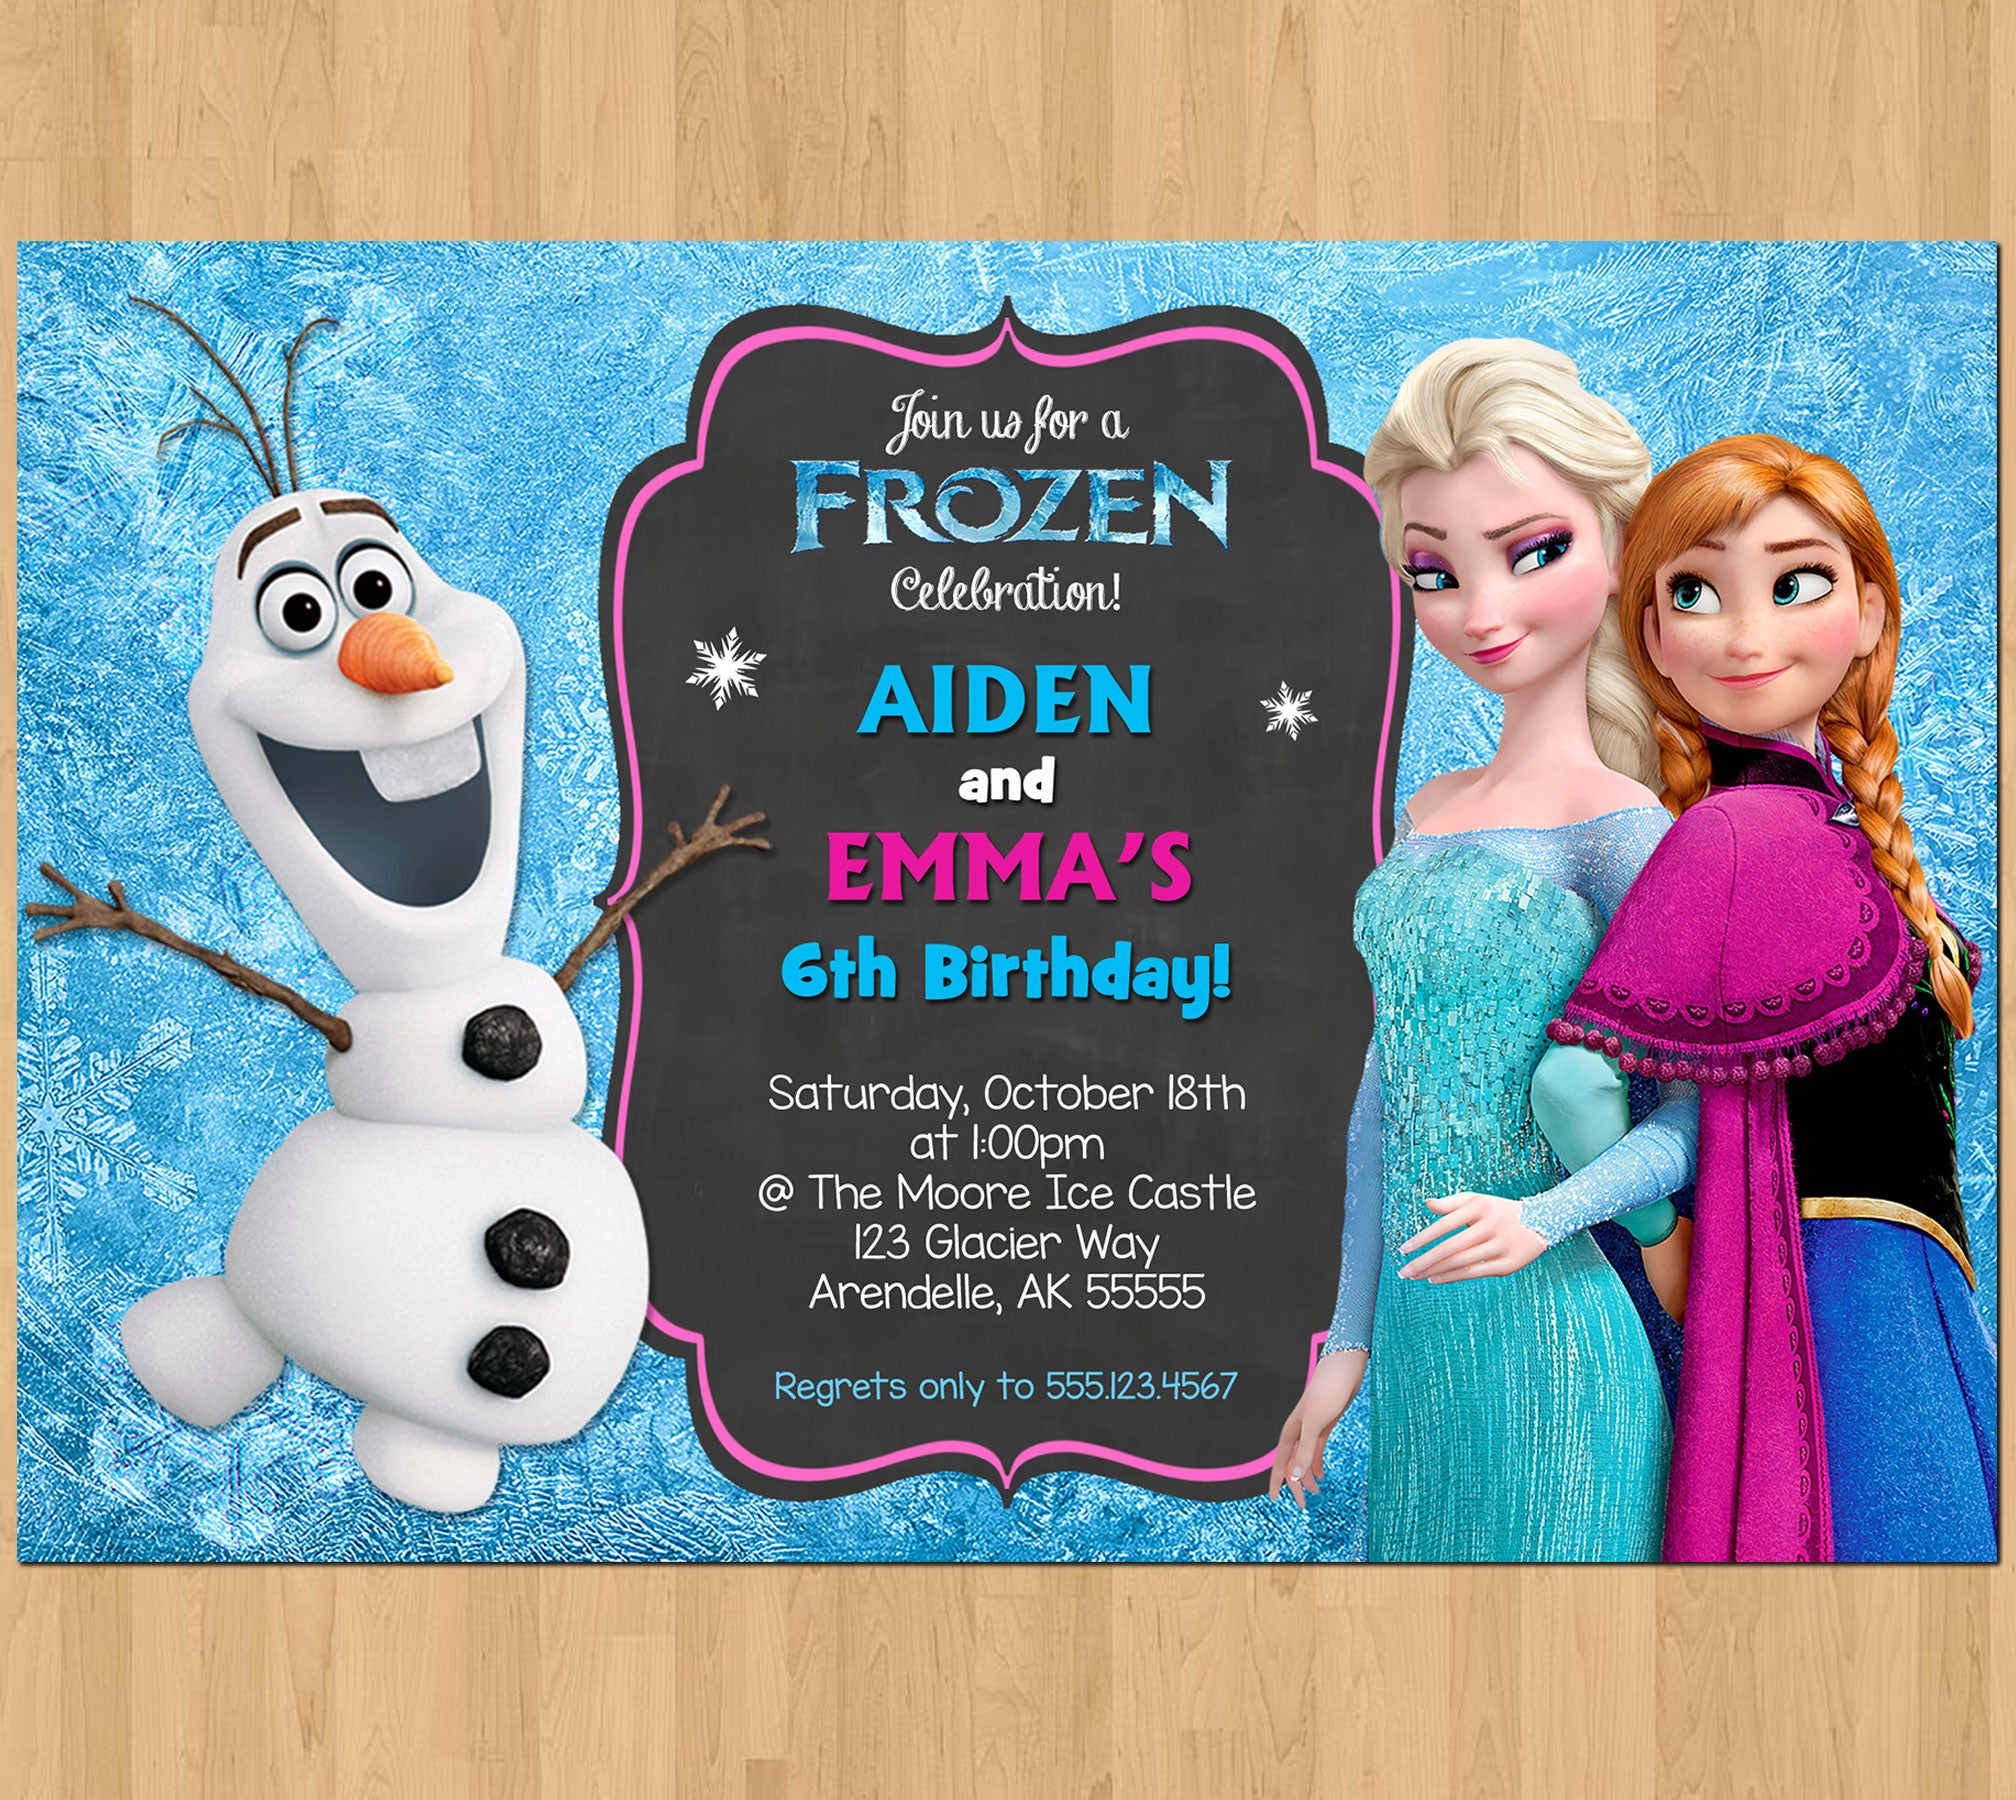 Sibling Birthday Invitation Frozen Olaf Elsa Anna Double Dual Twin Printable Party Digital Invite Boy Girl